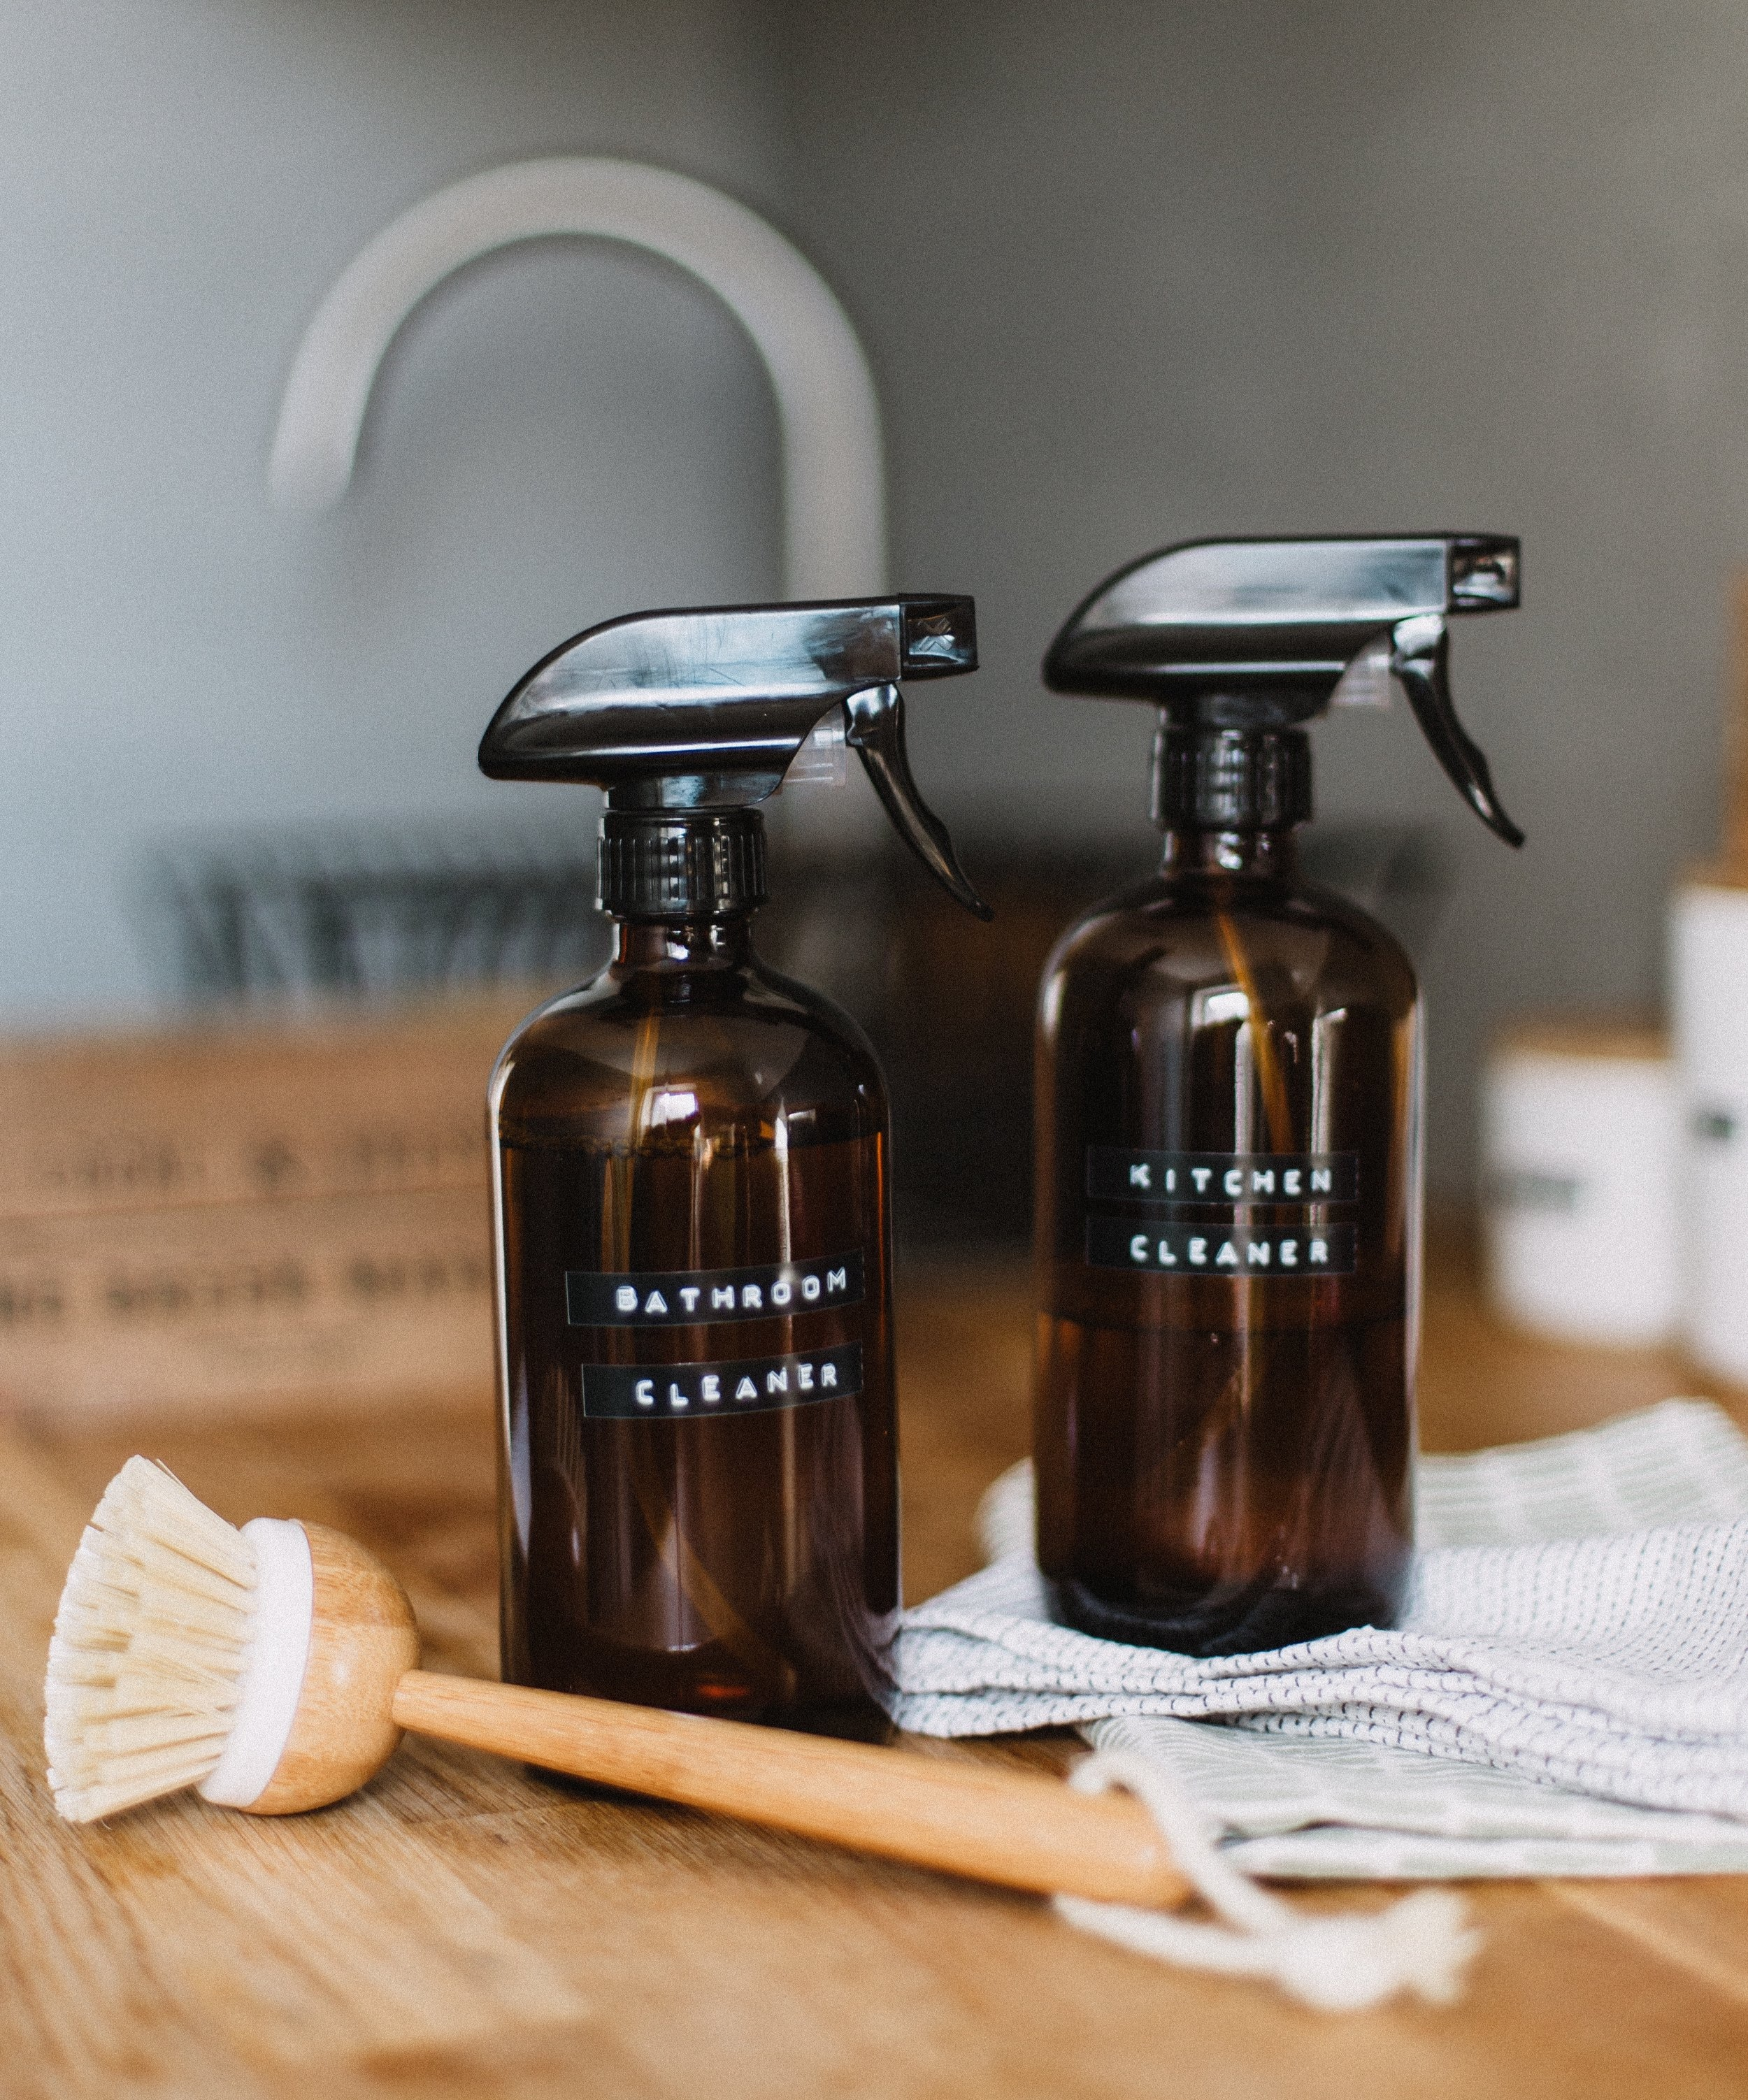 Green +Eco FriendlyCleaning Products - Humble Home TN uses earth friendly products. By using natural products we ensure safety from all bad chemicals, and allow families to avoid any risks that cause health problems.